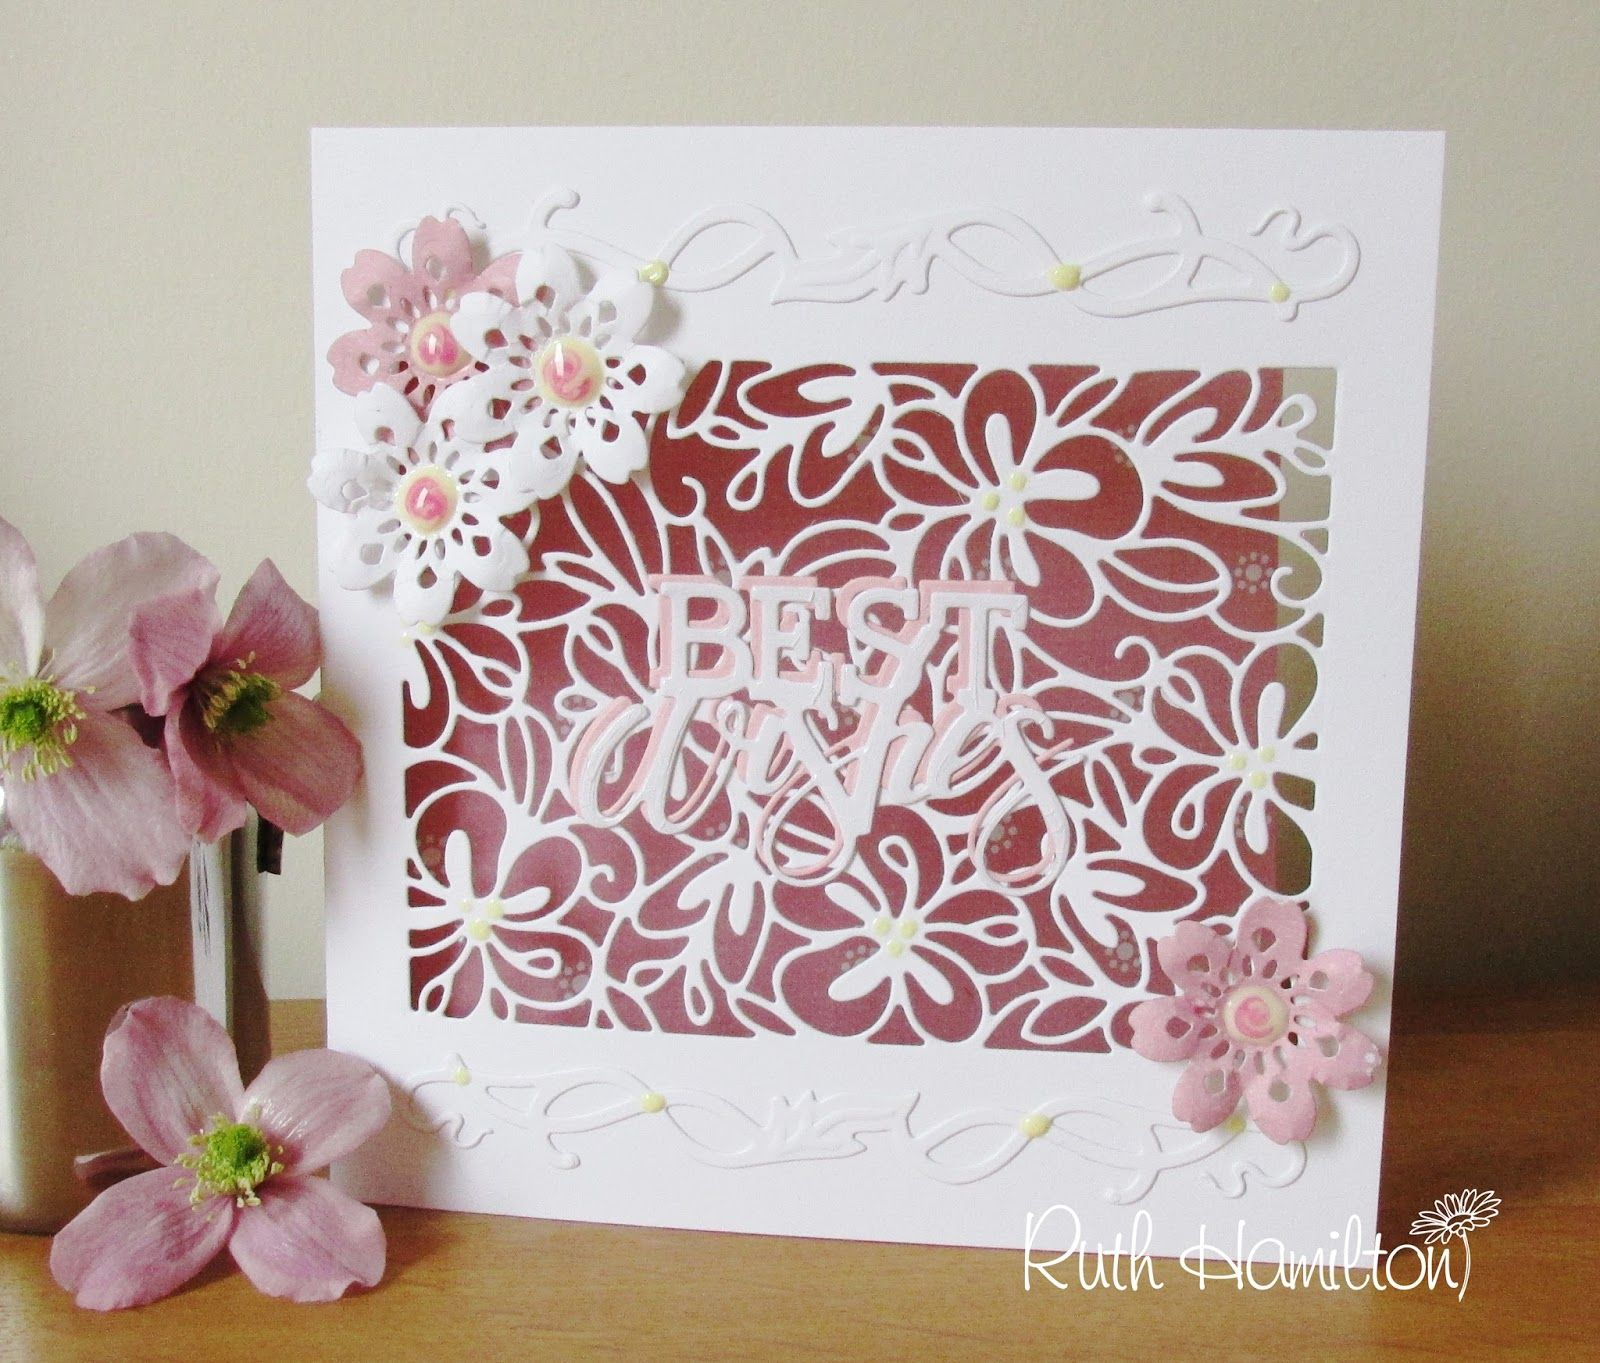 Best Wishes Floral Blooms Tonic Studios Cards Studio And